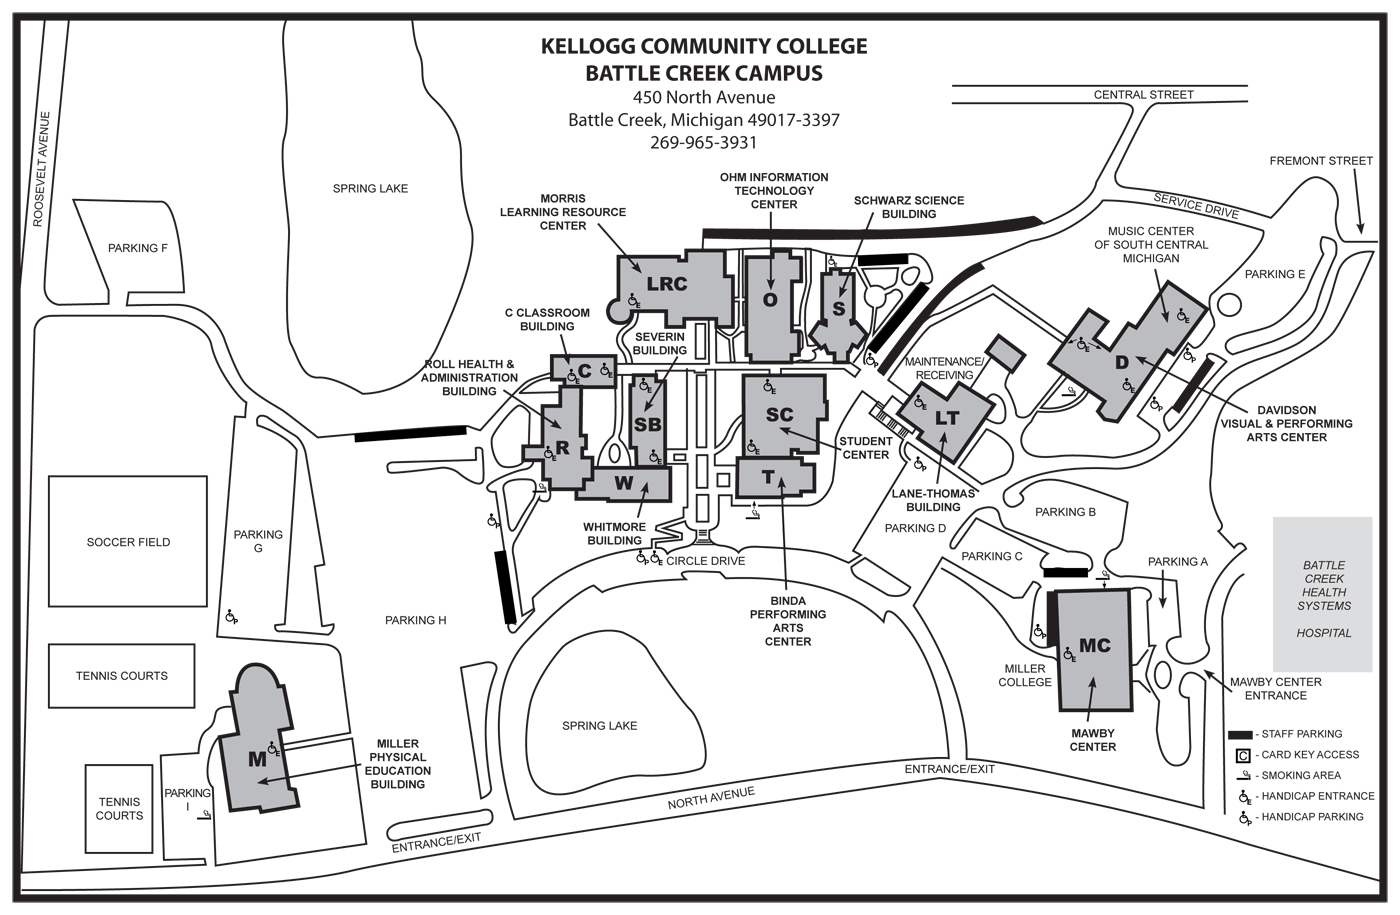 Kcc Campus Map Some parking lots closed this weekend on North Ave. campus – KCC Daily Kcc Campus Map